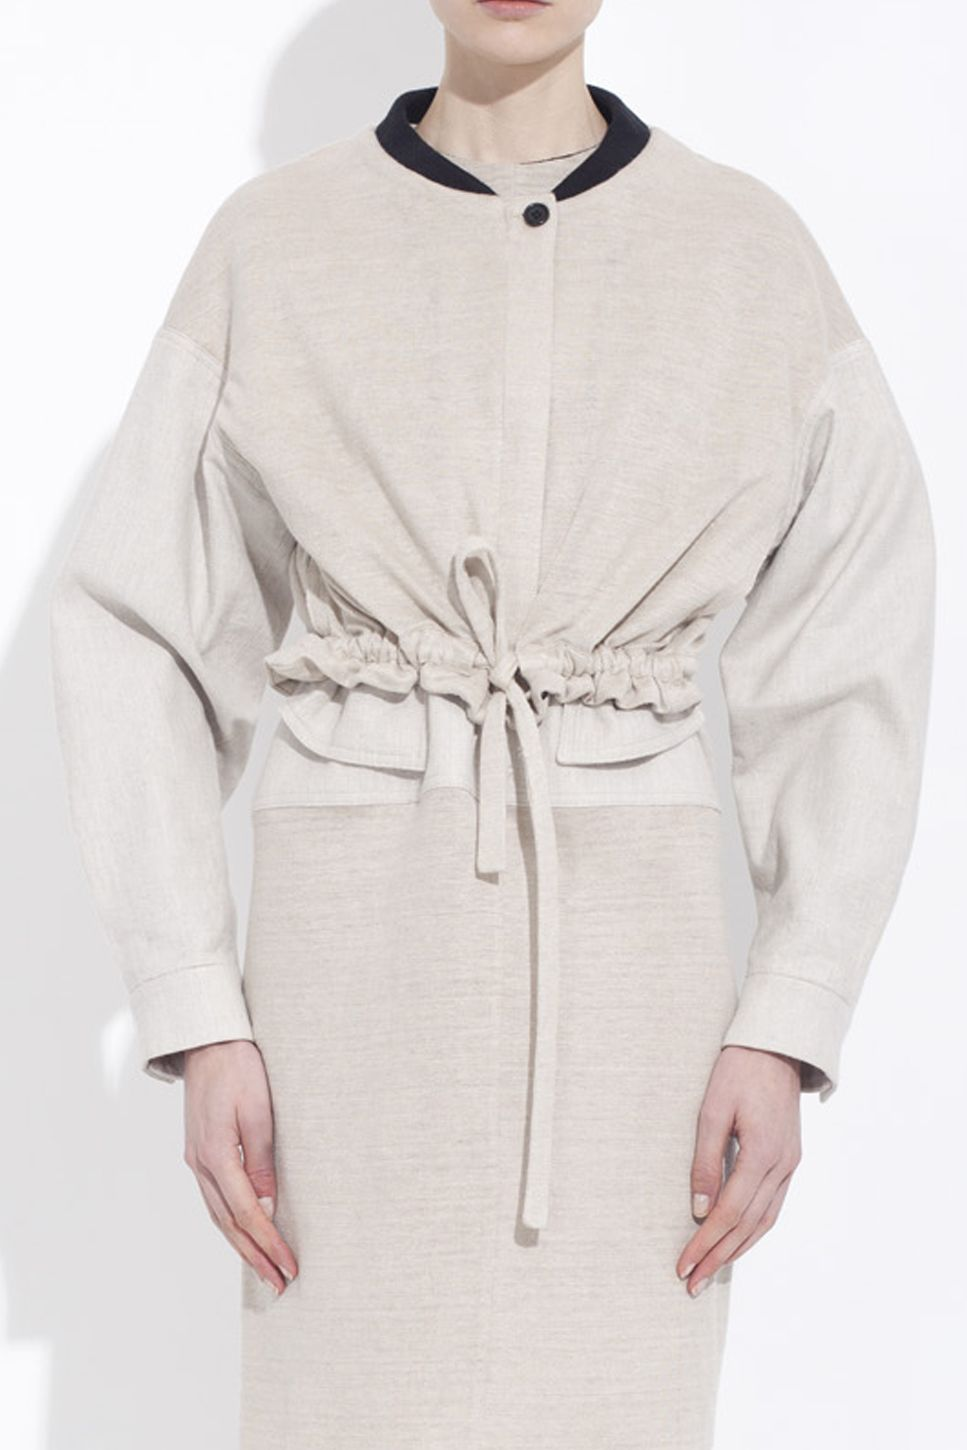 Sand Colored Organic Linen Jersey Bomber Jacket Collection Bruno Pieters Honest By Jersey Bomber Jacket Organic Linens Bomber Jacket